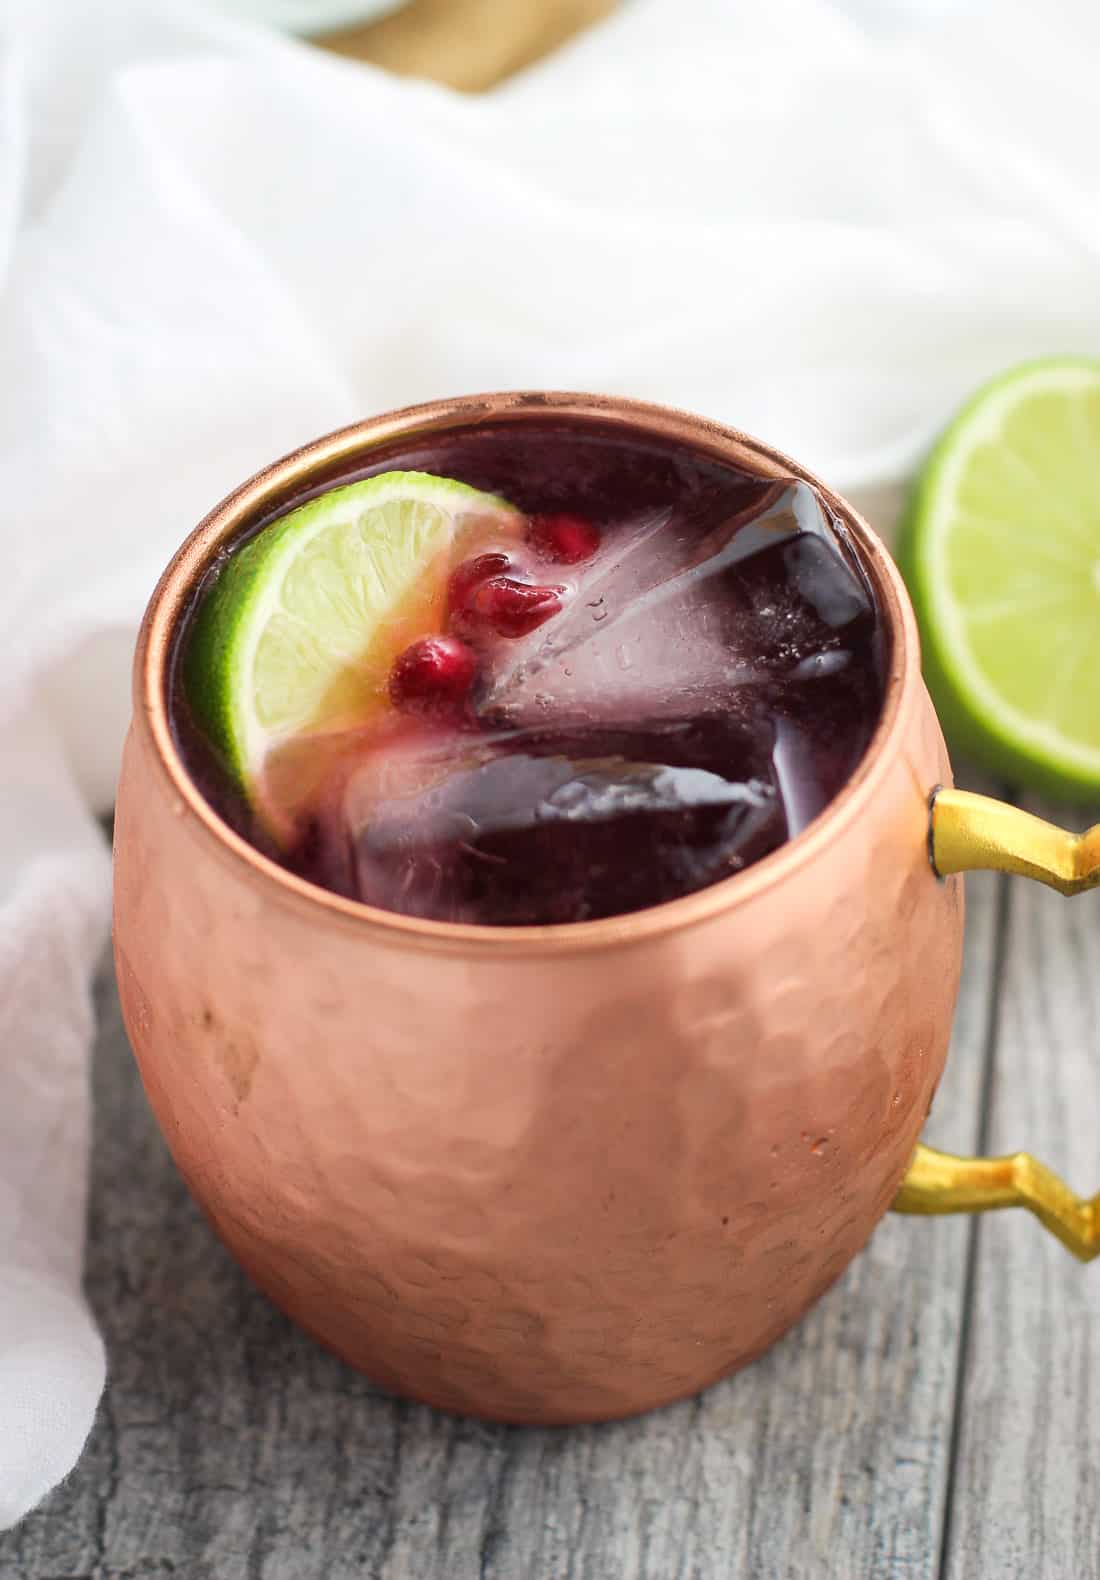 Pomegranate Pics Pomegranate Moscow Mule